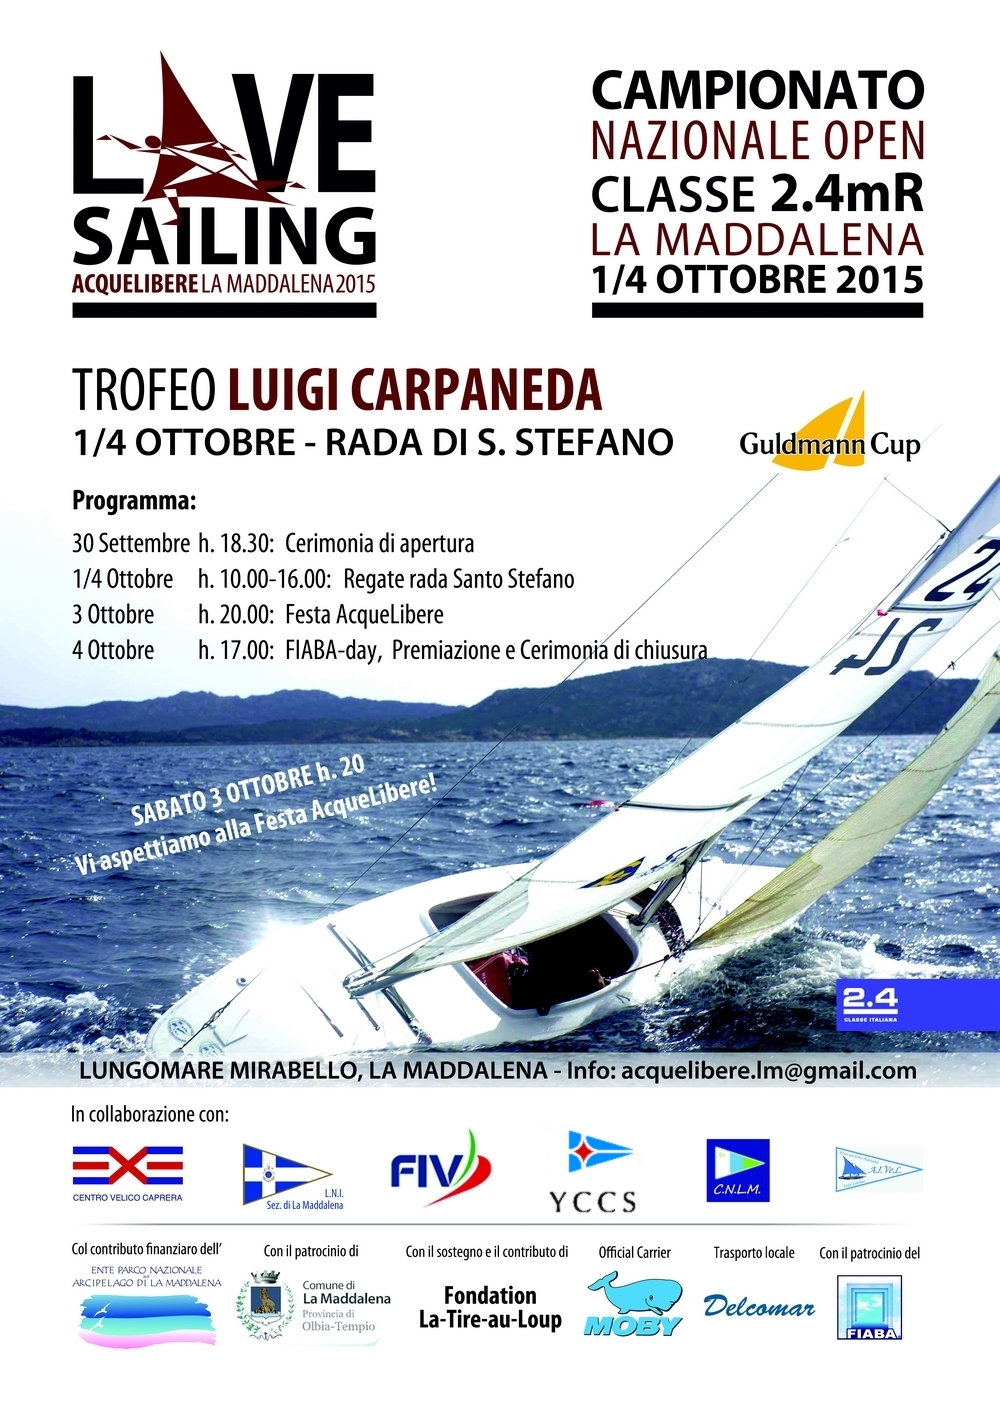 CAMPIONATO NAZIONALE OPEN CLASSE 2.4MR - NEWS - Yacht Club Costa Smeralda